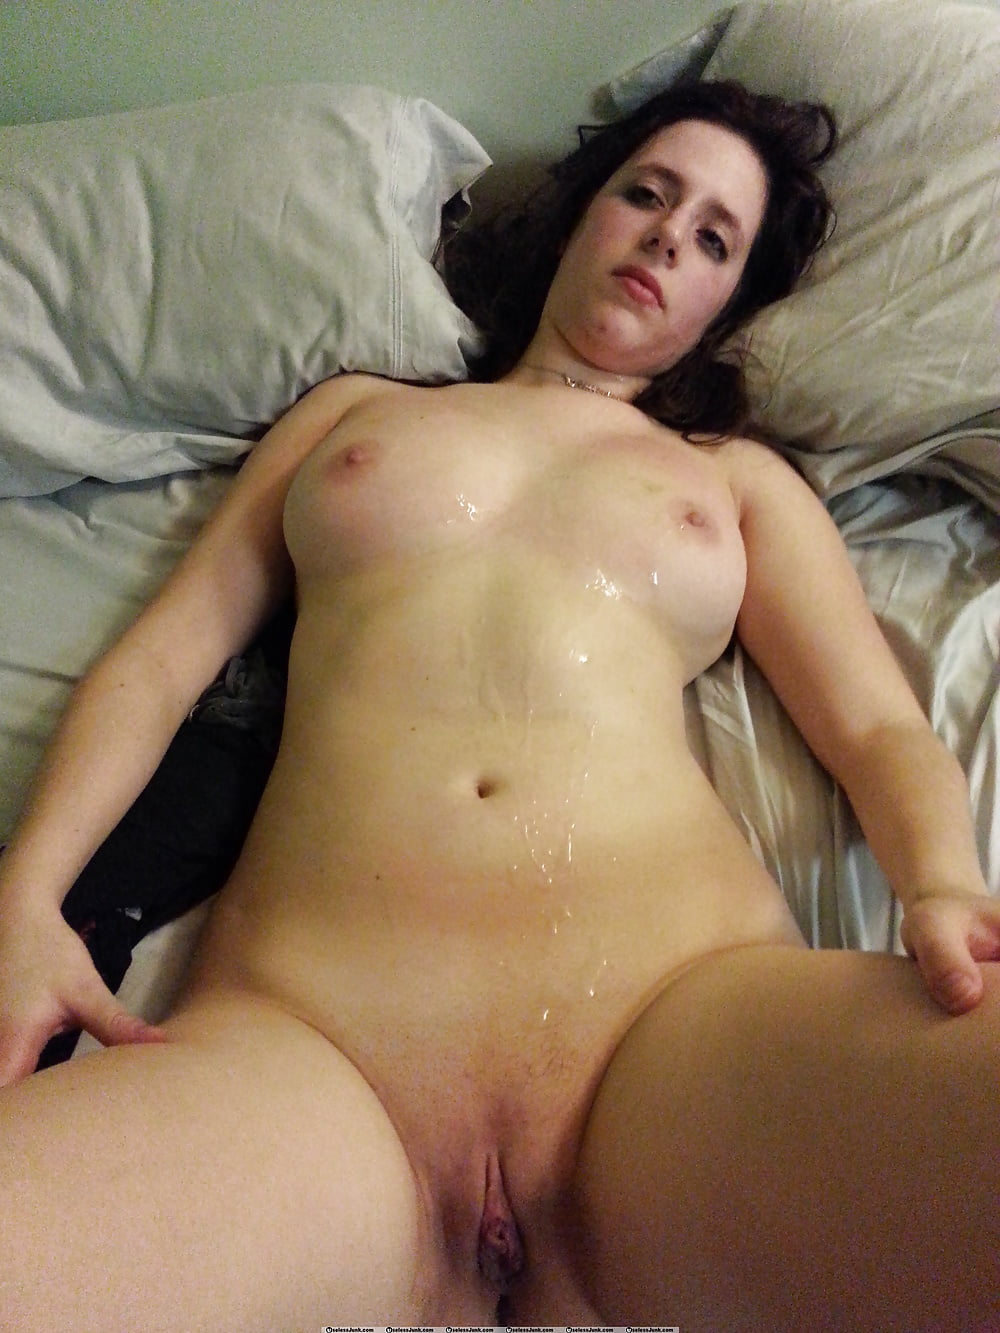 Pov blowjob tube